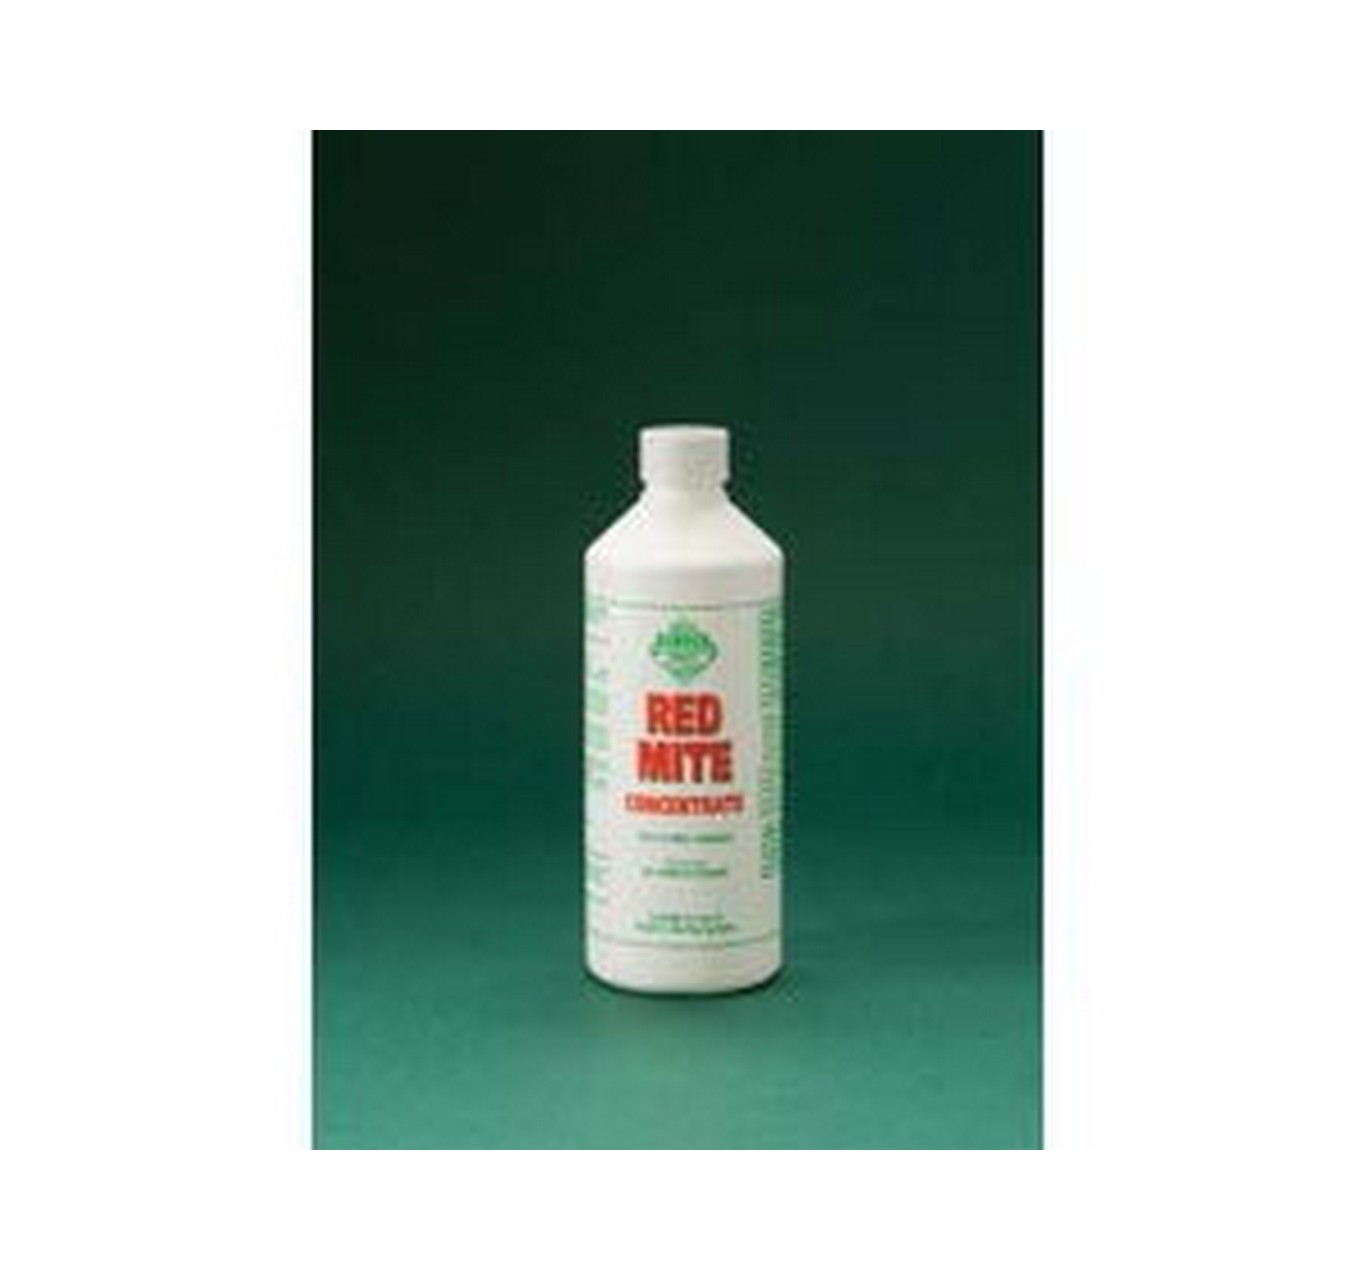 Red Mite Concentrate 500ml